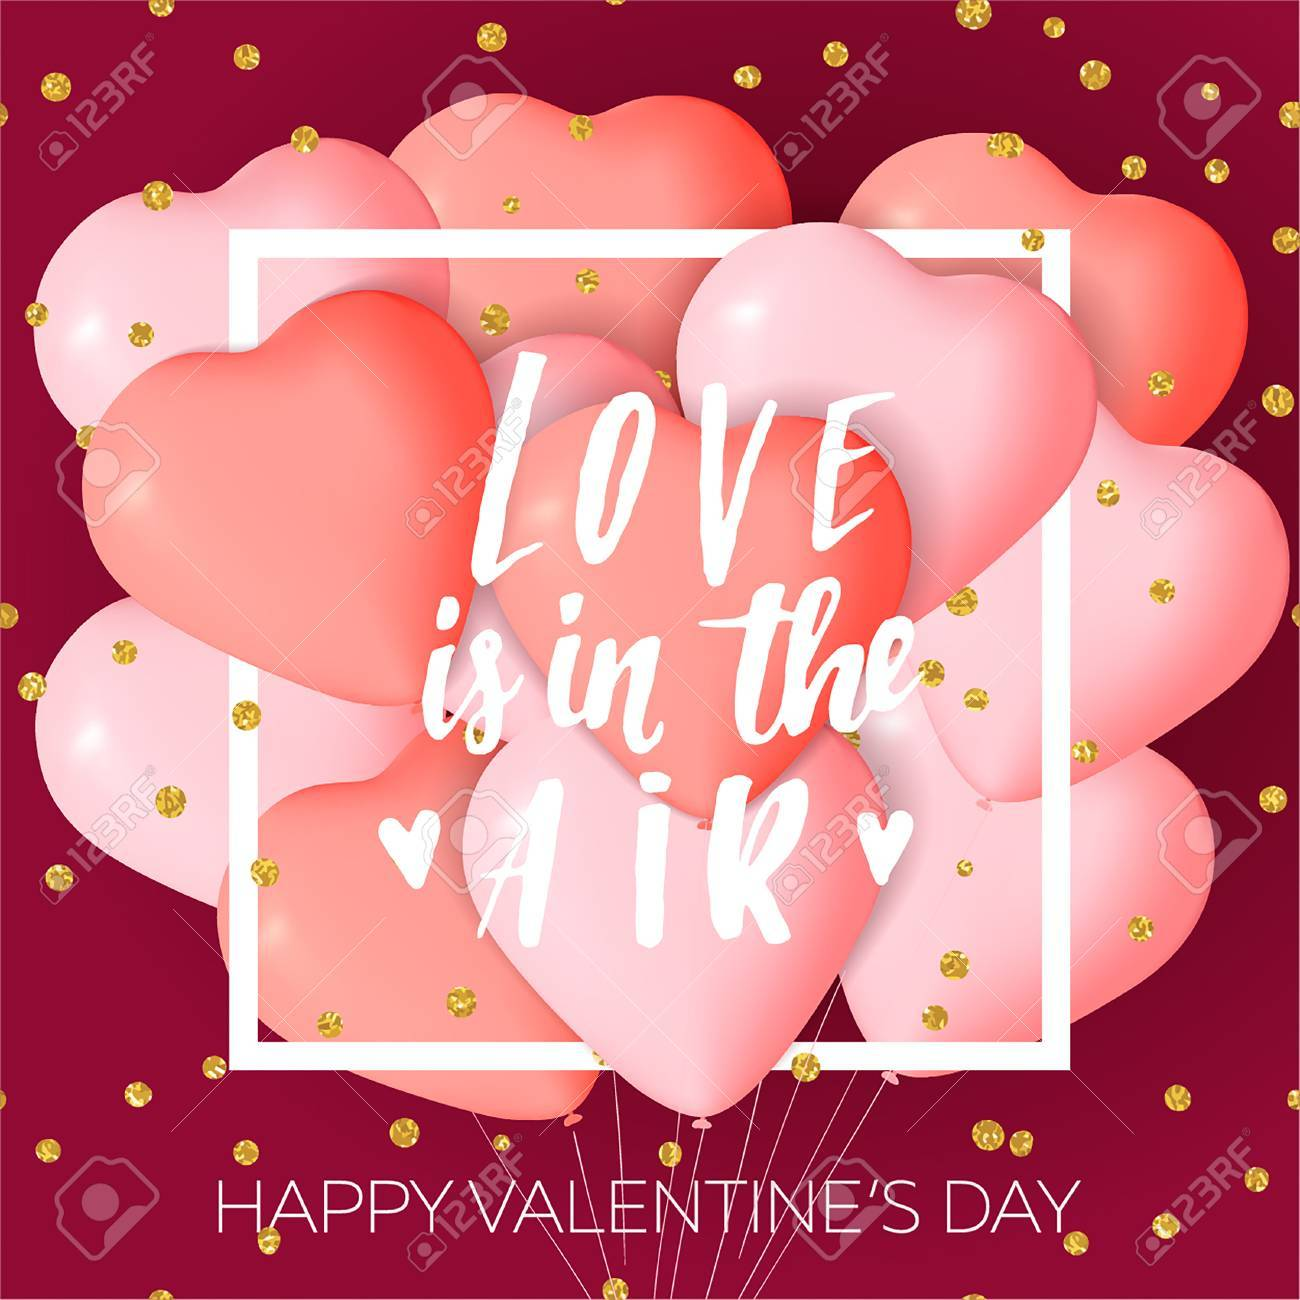 Happy Valentines Day Card Template With Cute And Fancy Pink Red Heart Balloons Lettering